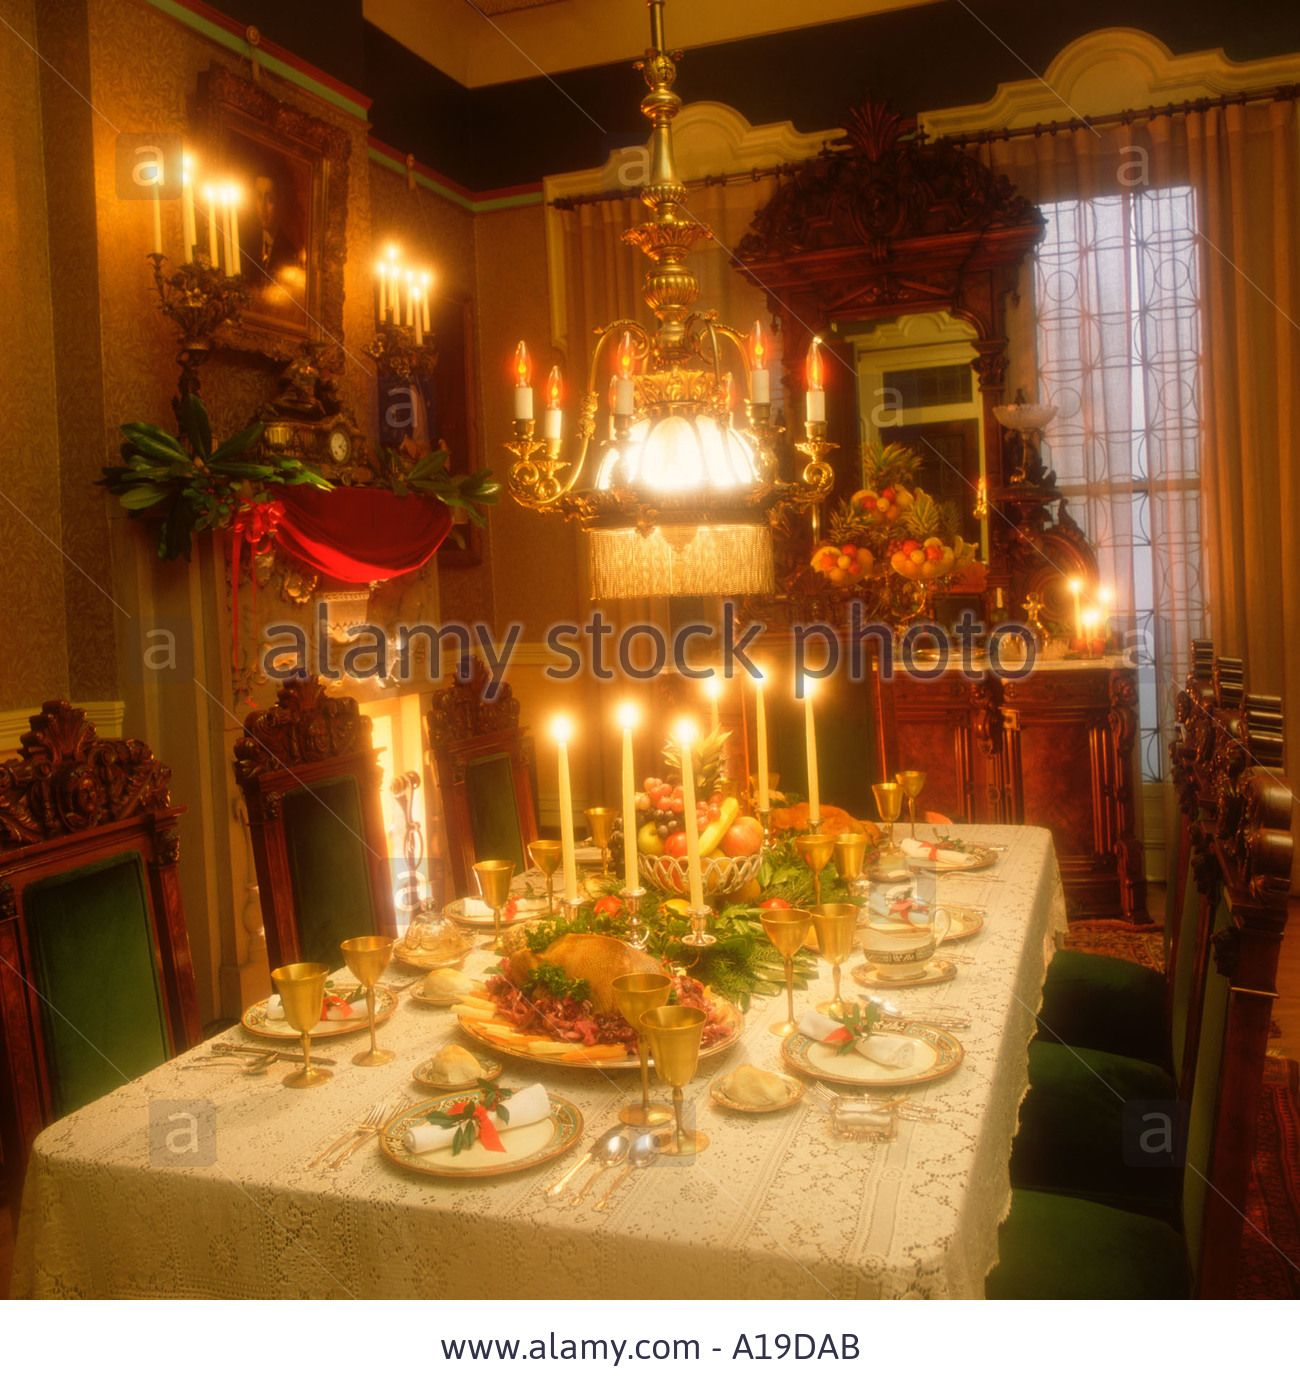 Victorian christmas dinner table setting stock photo the for Edwardian table setting